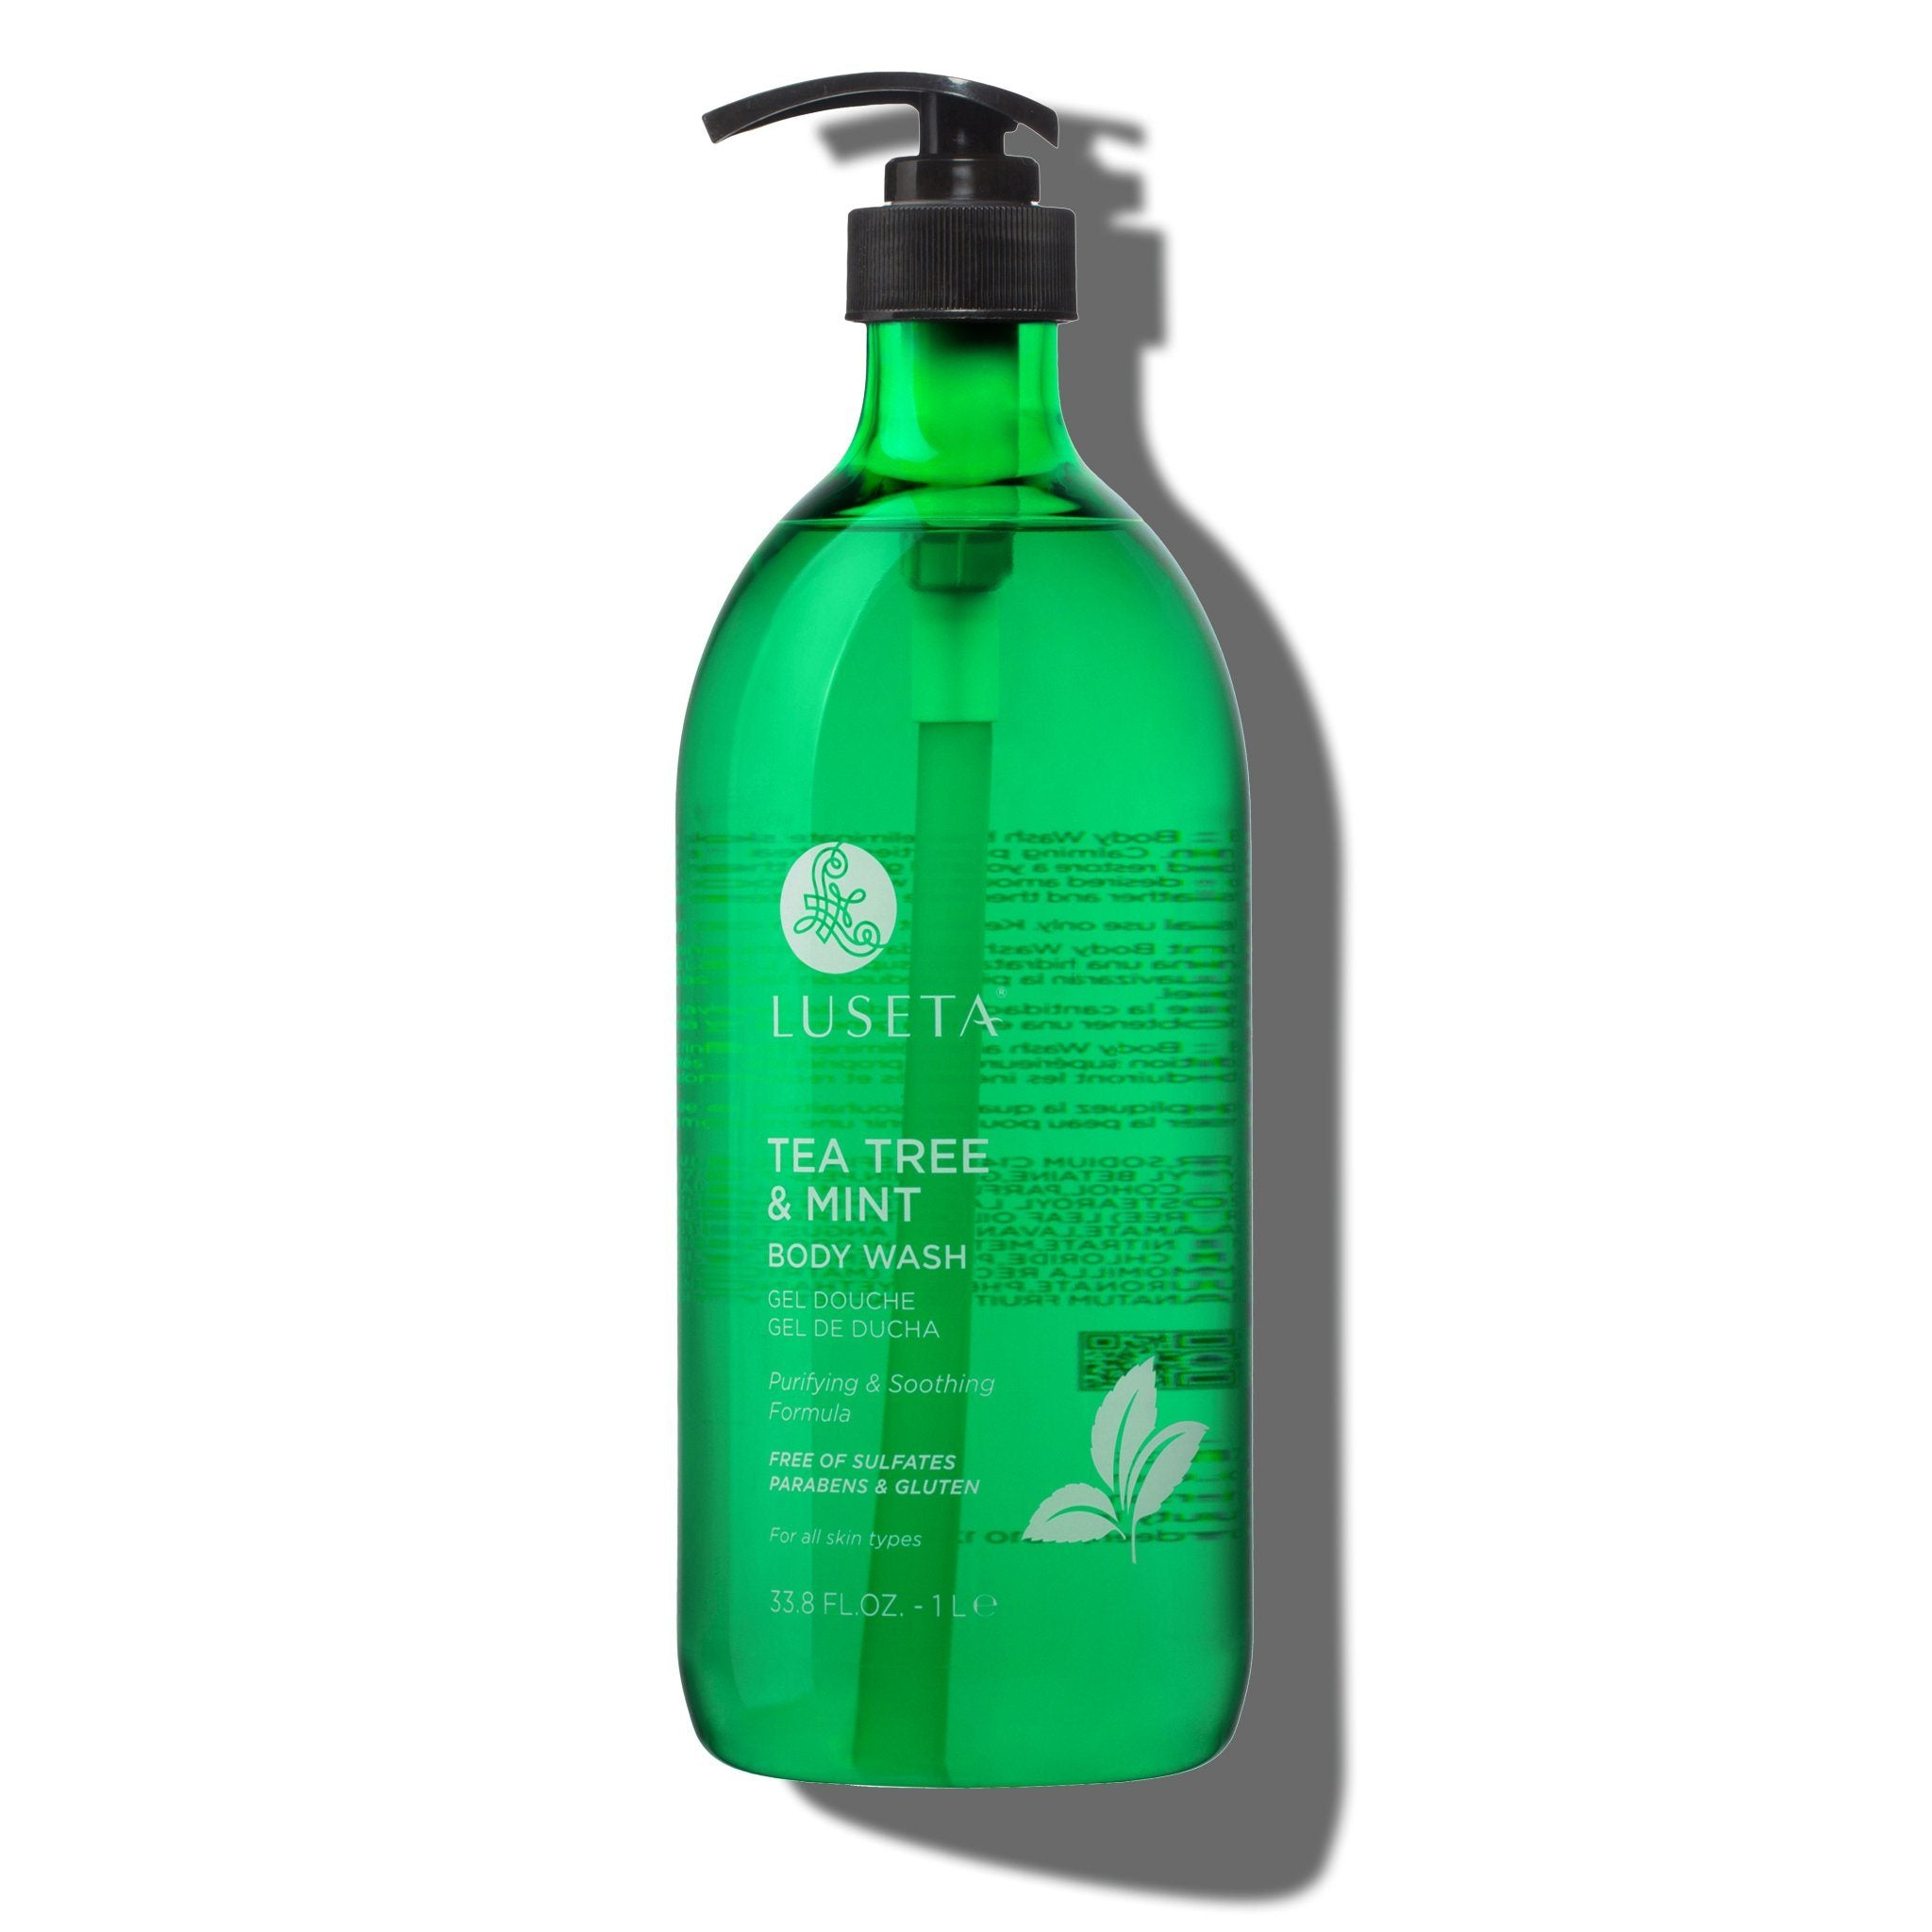 Tea Tree & Mint Body Wash - Luseta Beauty